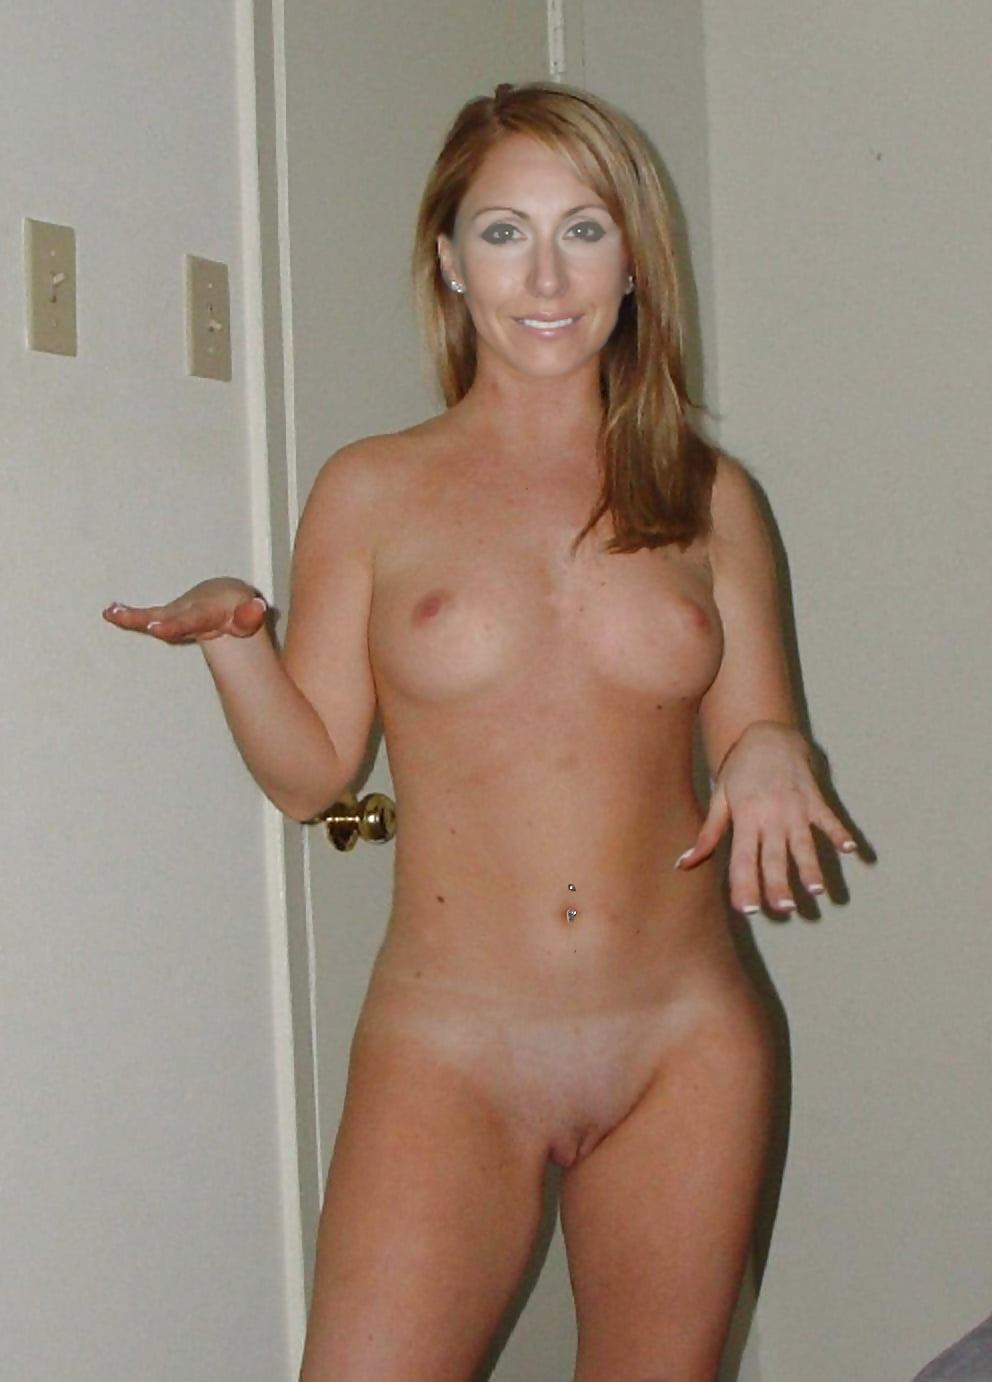 Little amateur milf, pc video game nudity